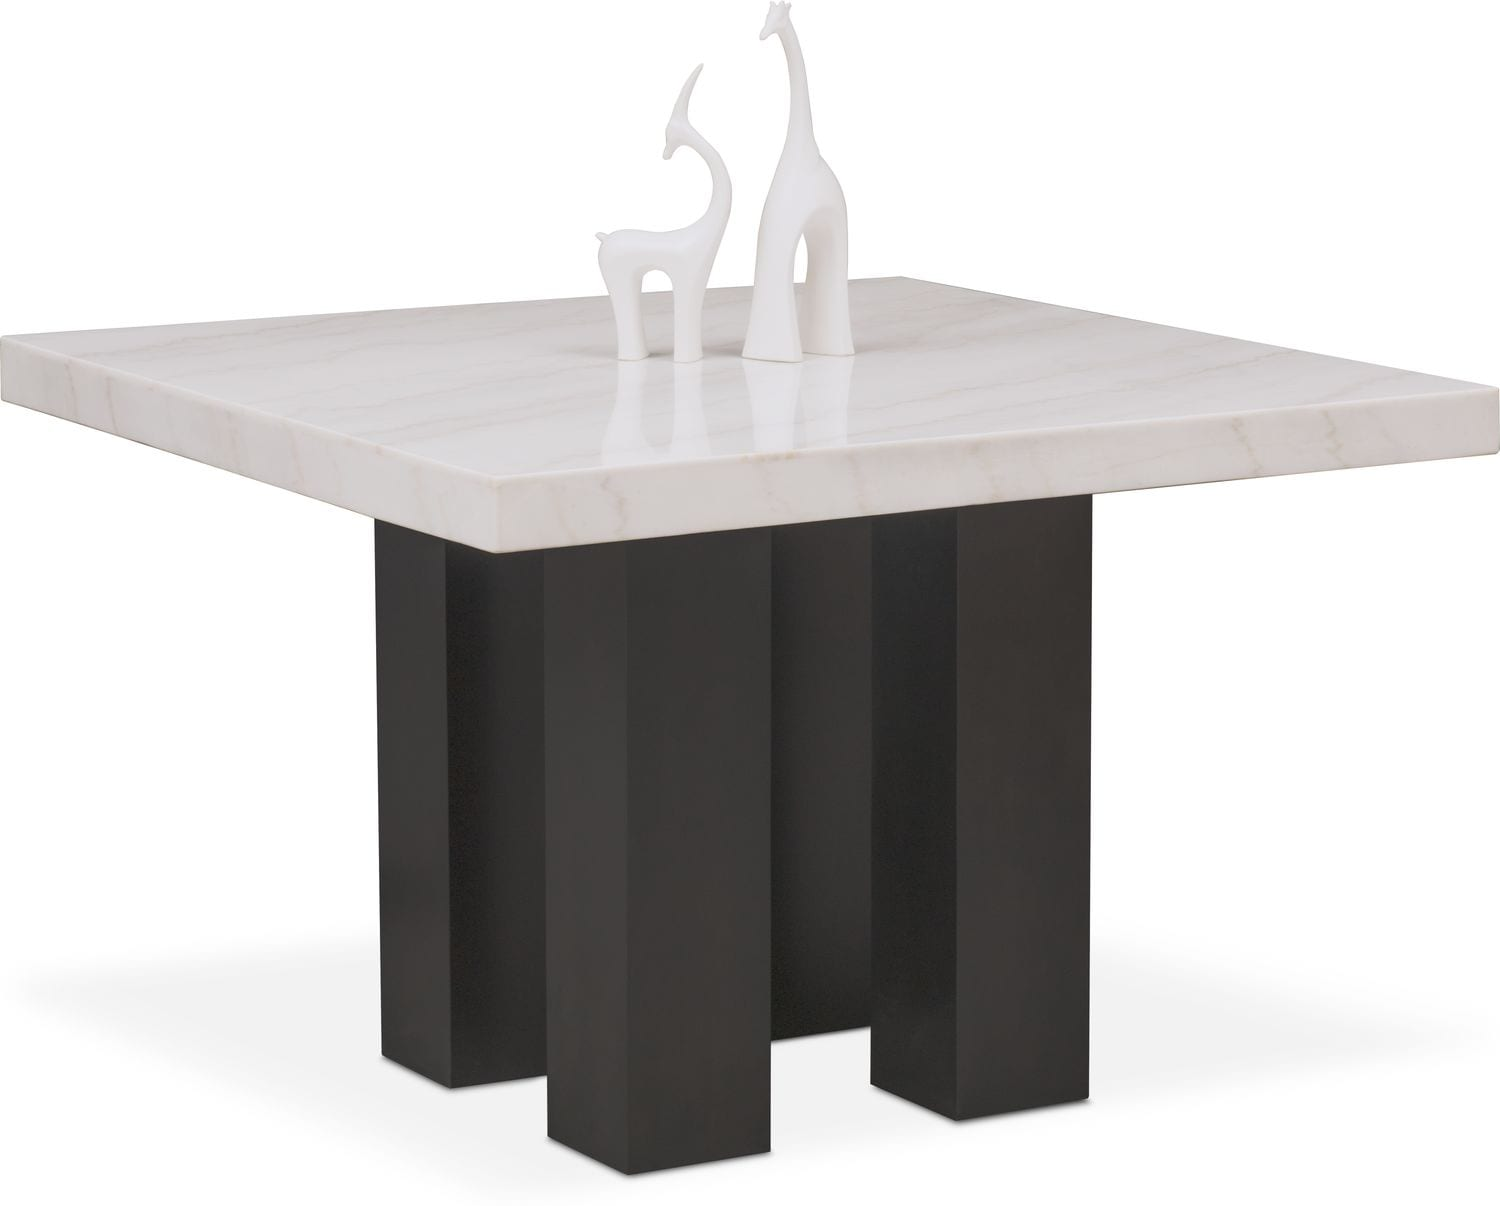 Dining Room Furniture - Artemis Counter-Height Dining Table - Marble